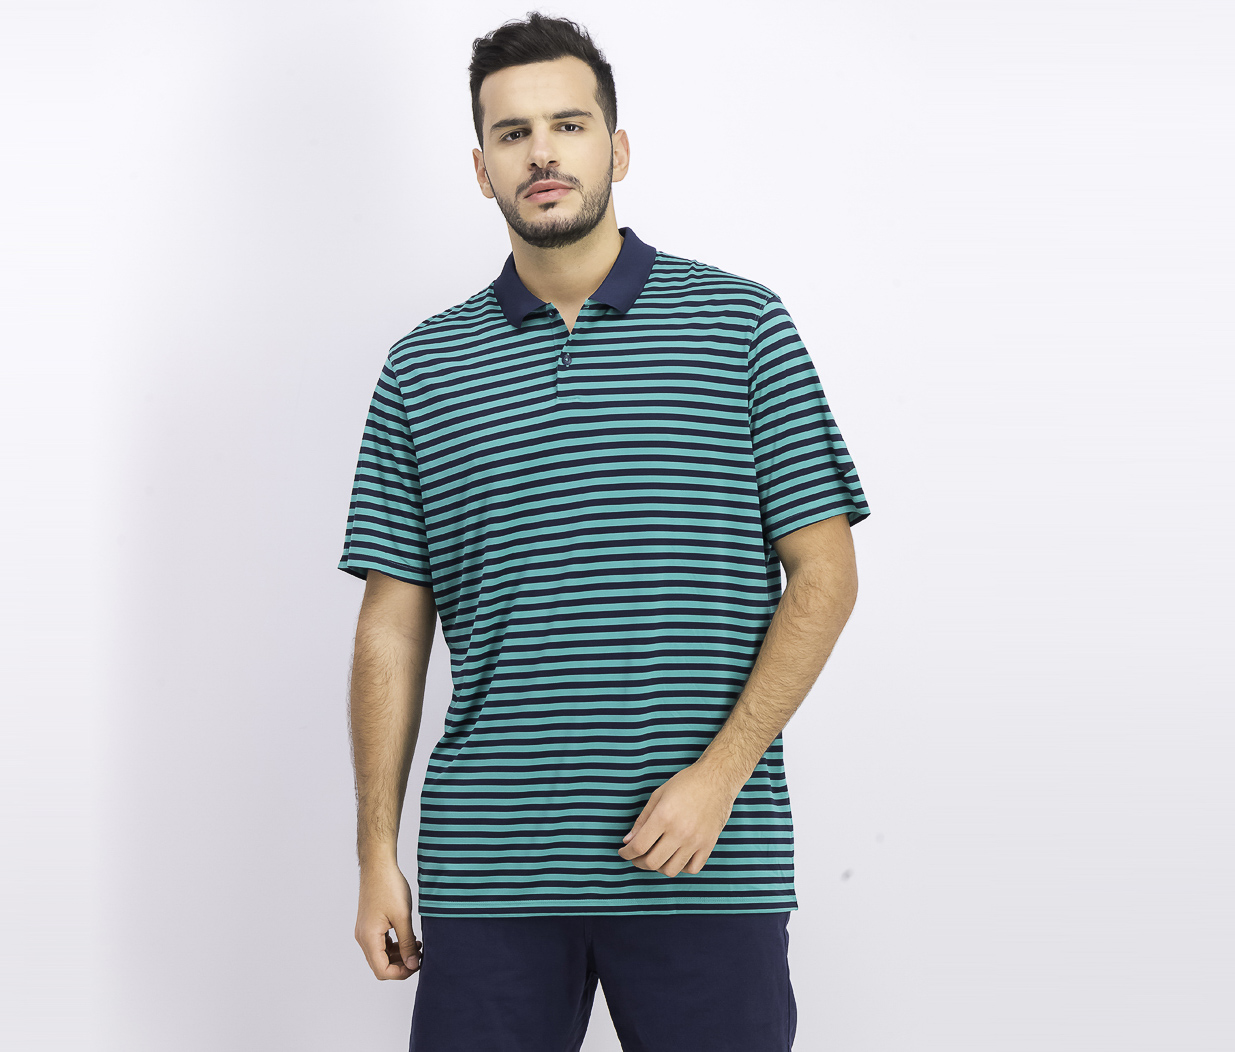 Men's Dry Victory Striped Golf Polo, Green/Navy Blue